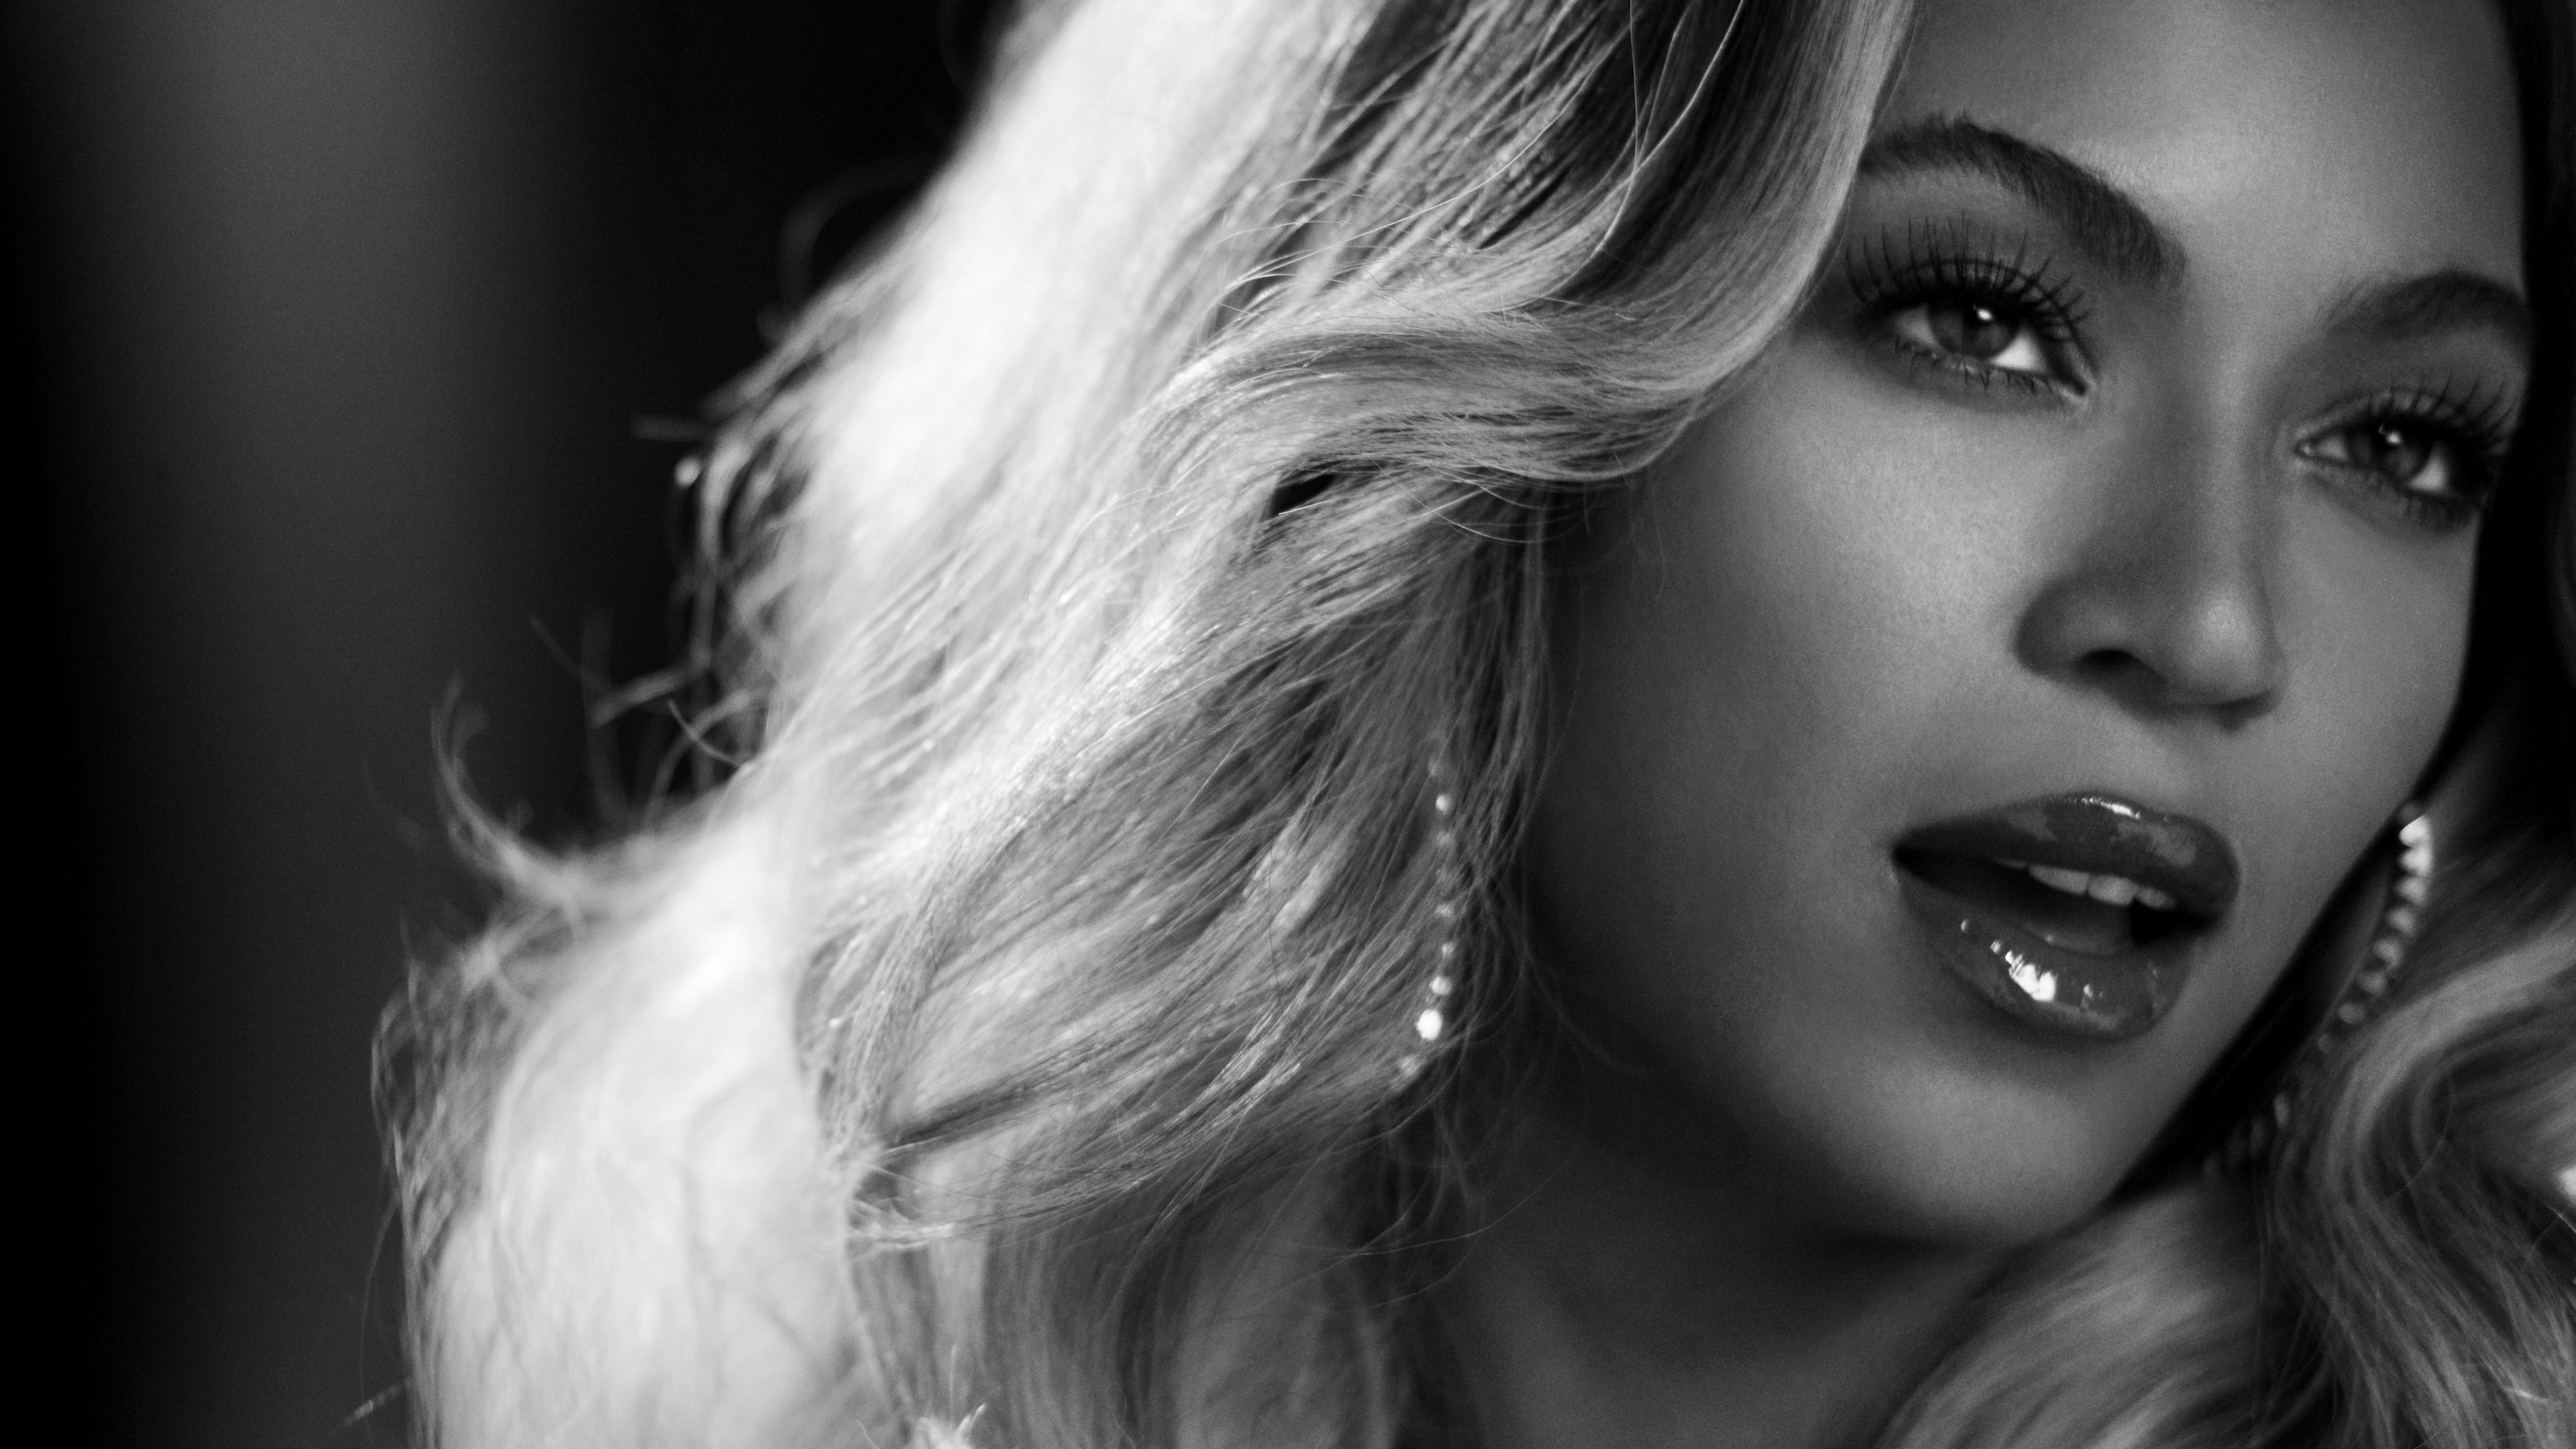 Beyonce in Black & White Wallpaper for Desktop 4K 3840x2160